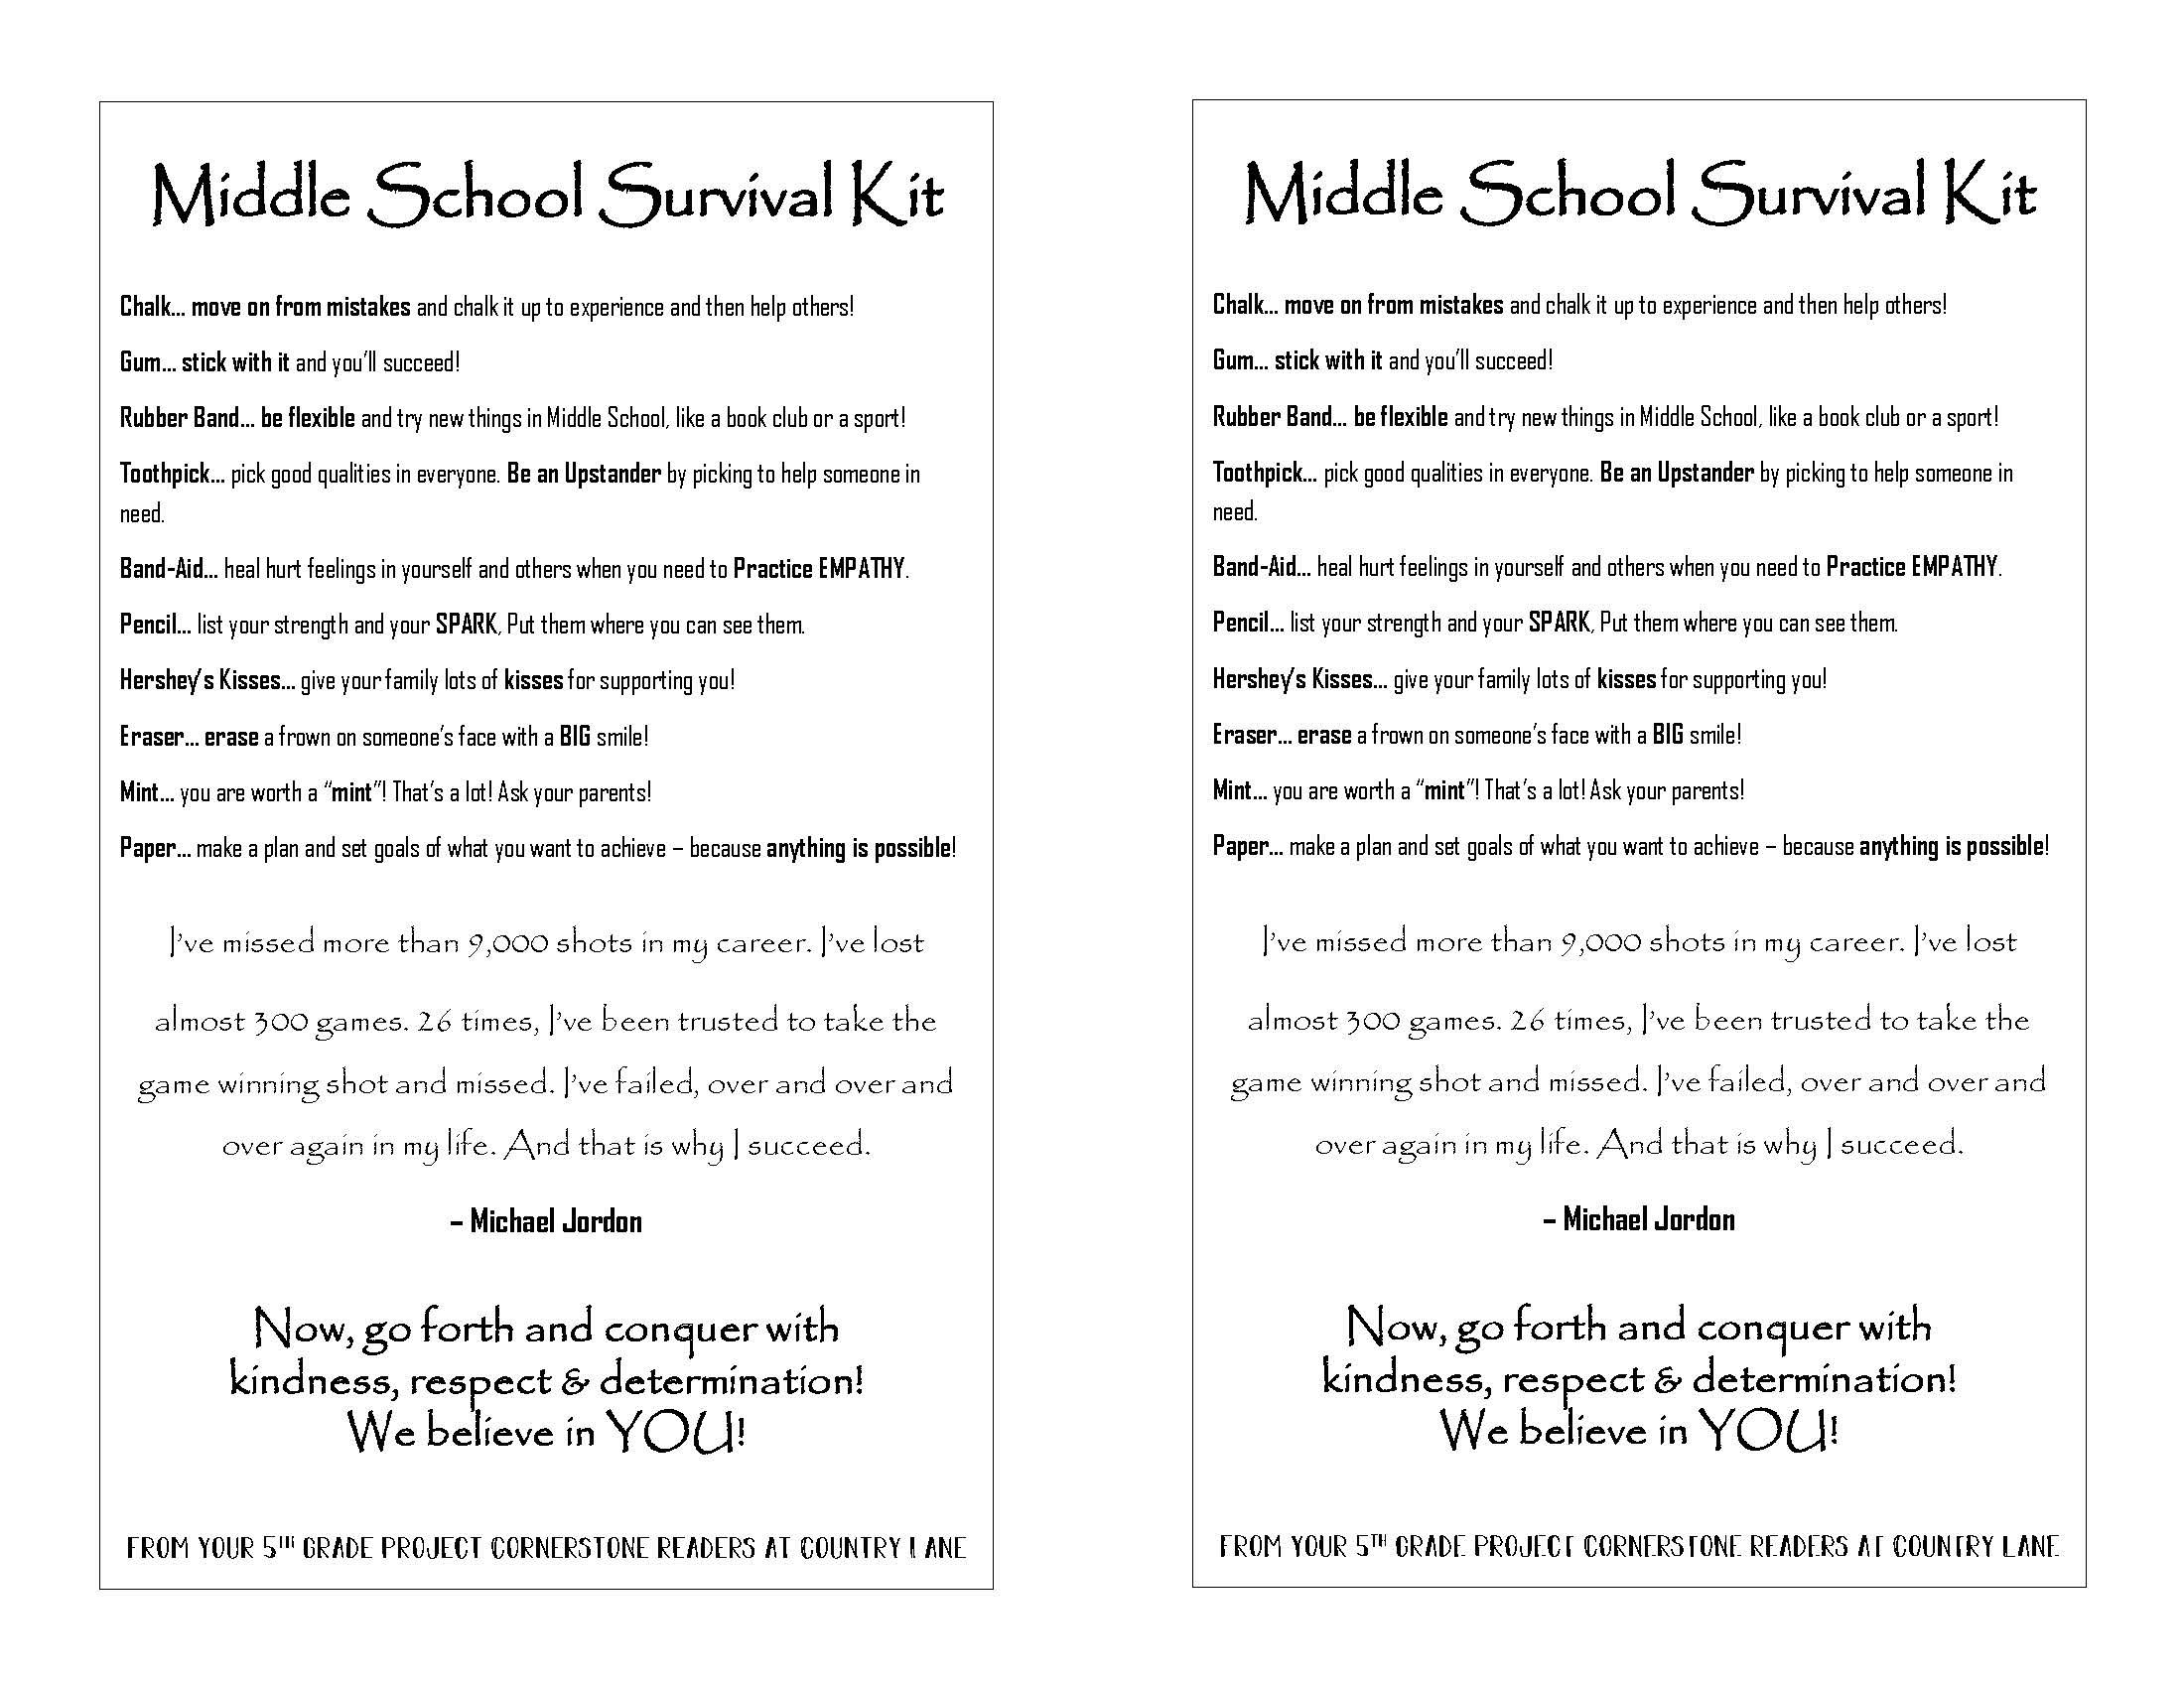 A Middle School Survival Kit Created By The Volunteers At